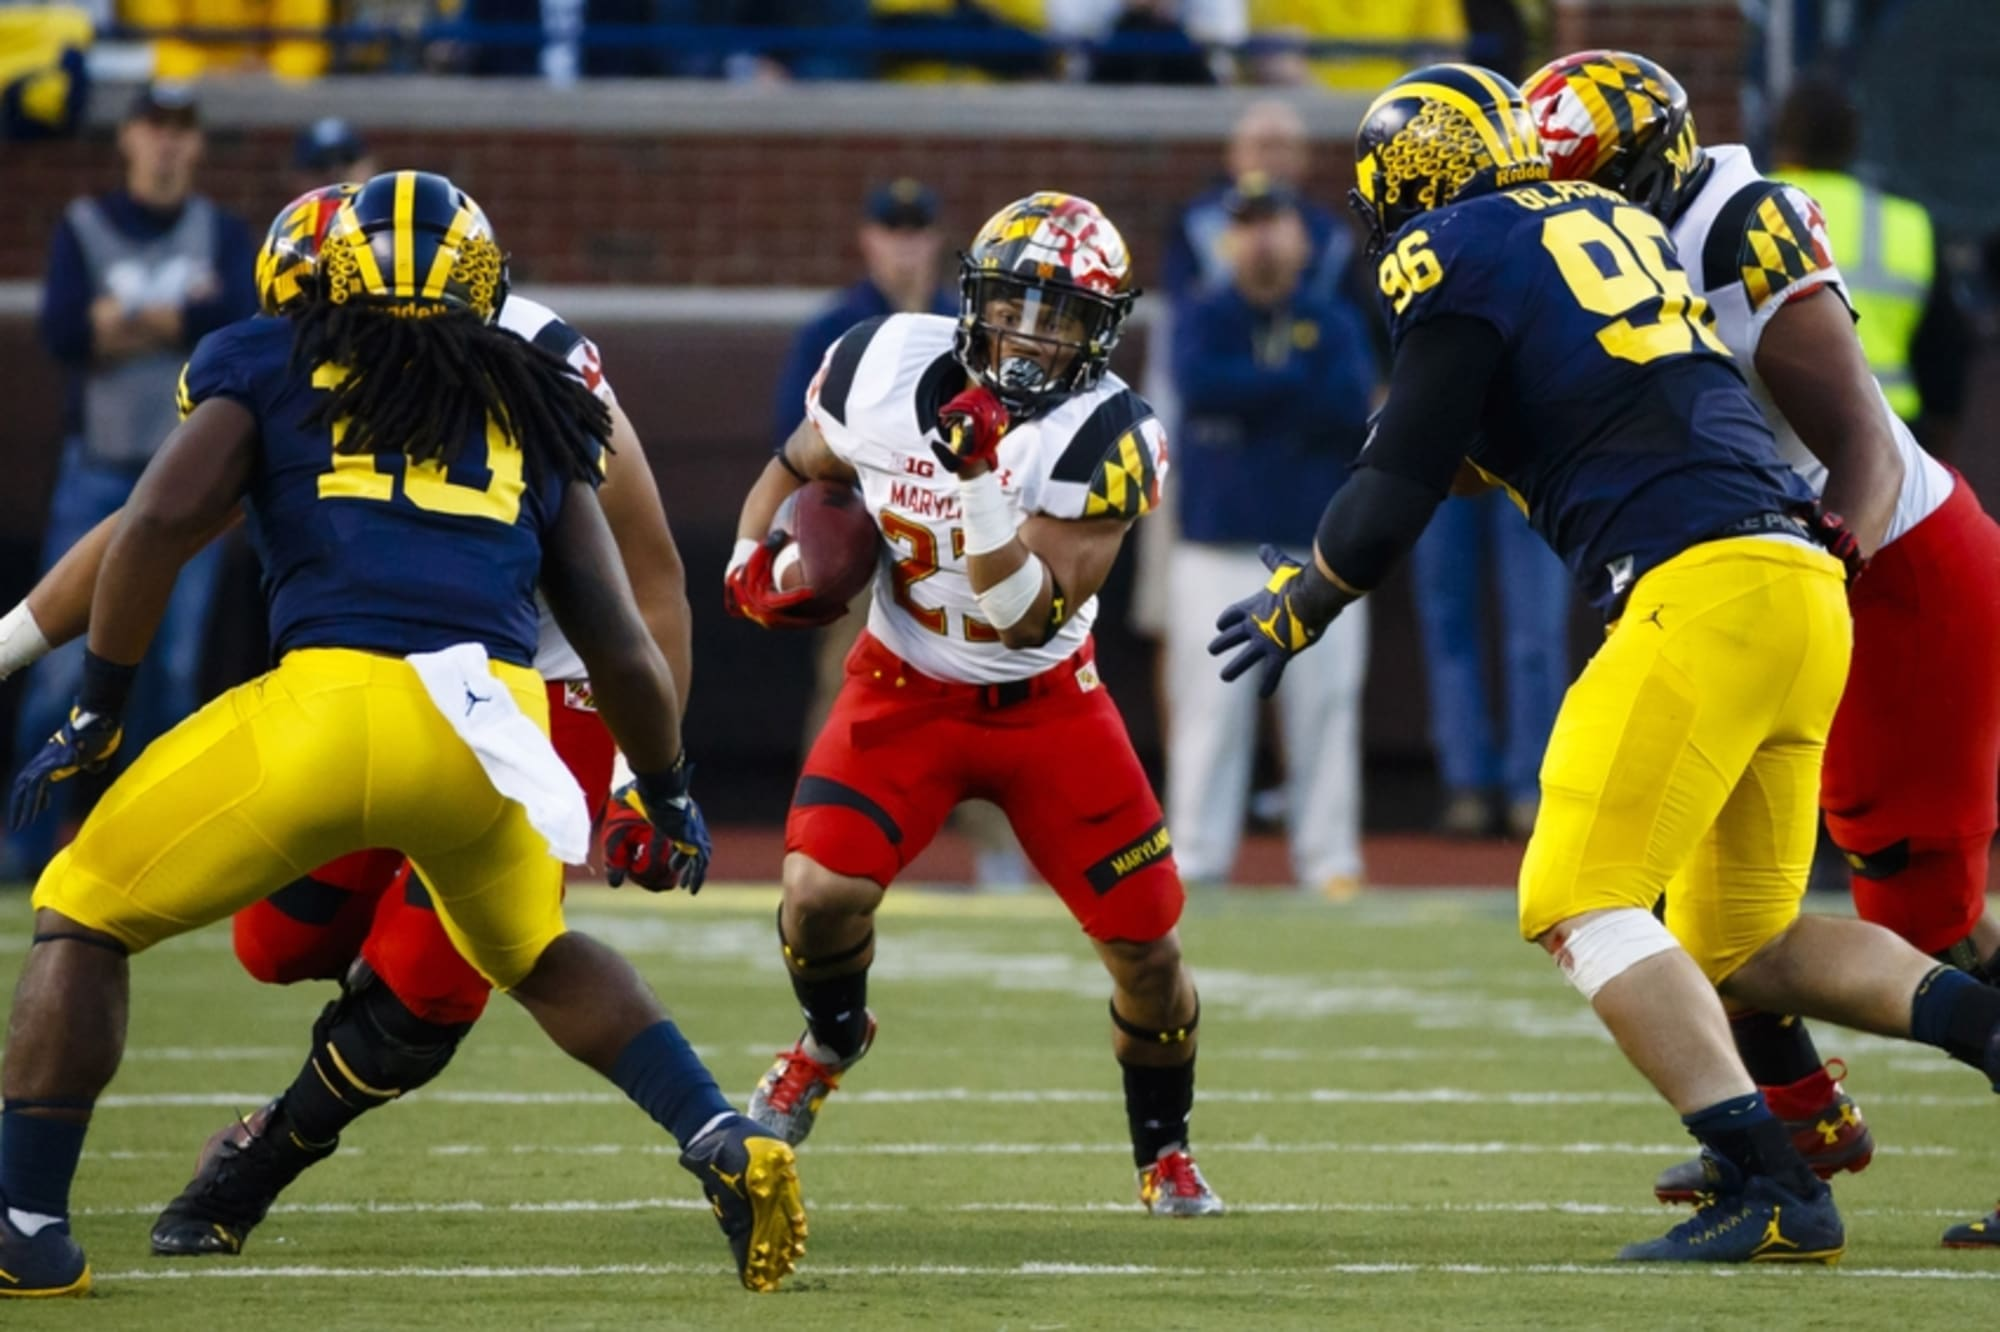 Pin By Md Minhajul Mamun On Soccer Players: Maryland Football: Will The Terps Make A Bowl Game?